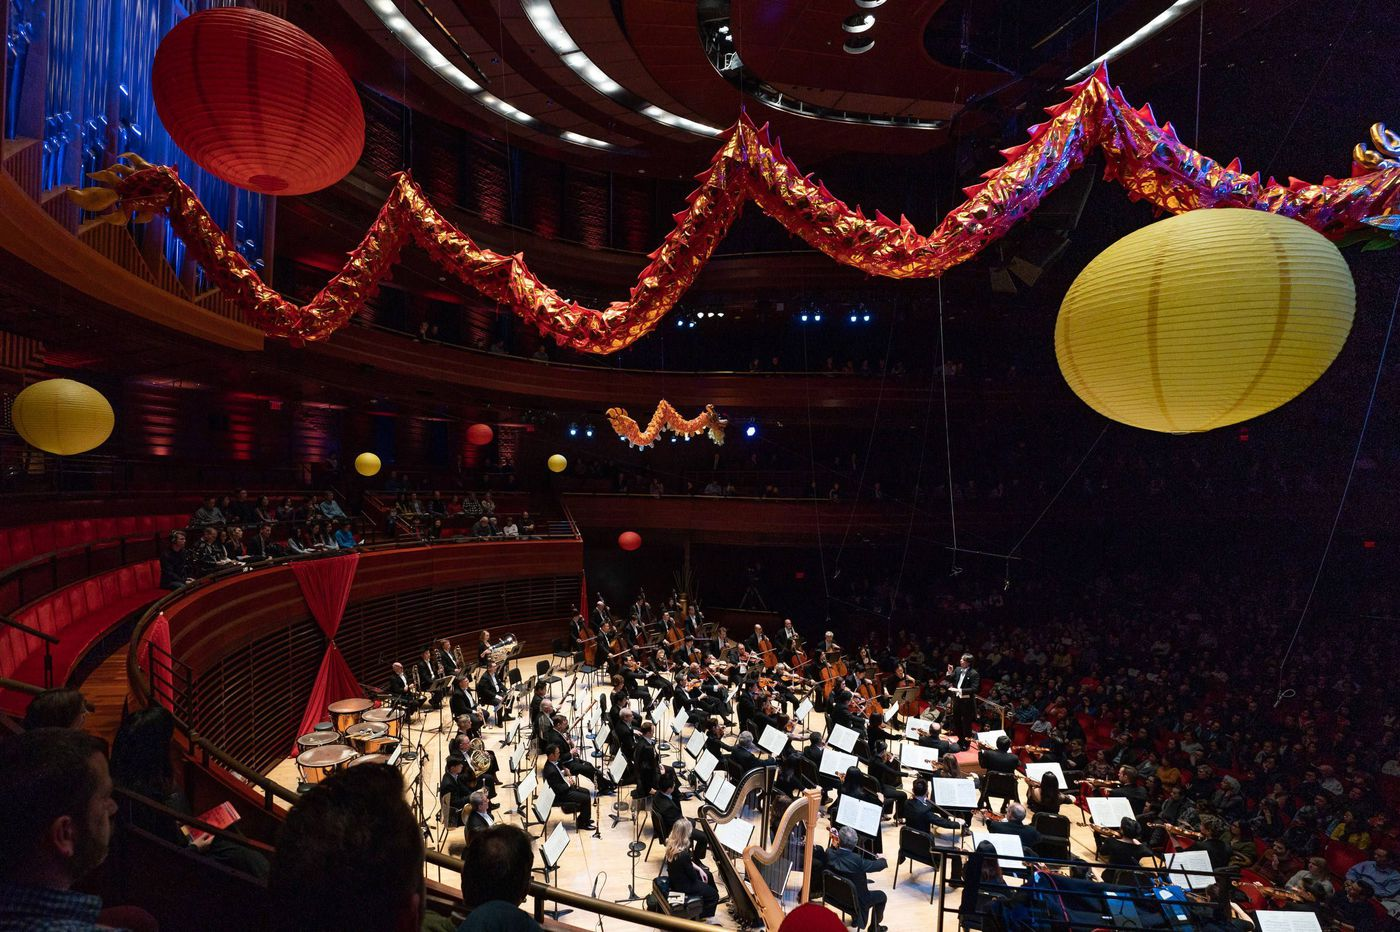 Like the Sixers, the Philadelphia Orchestra has a Chinese engagement this week, and two concerts in Taiwan coming soon